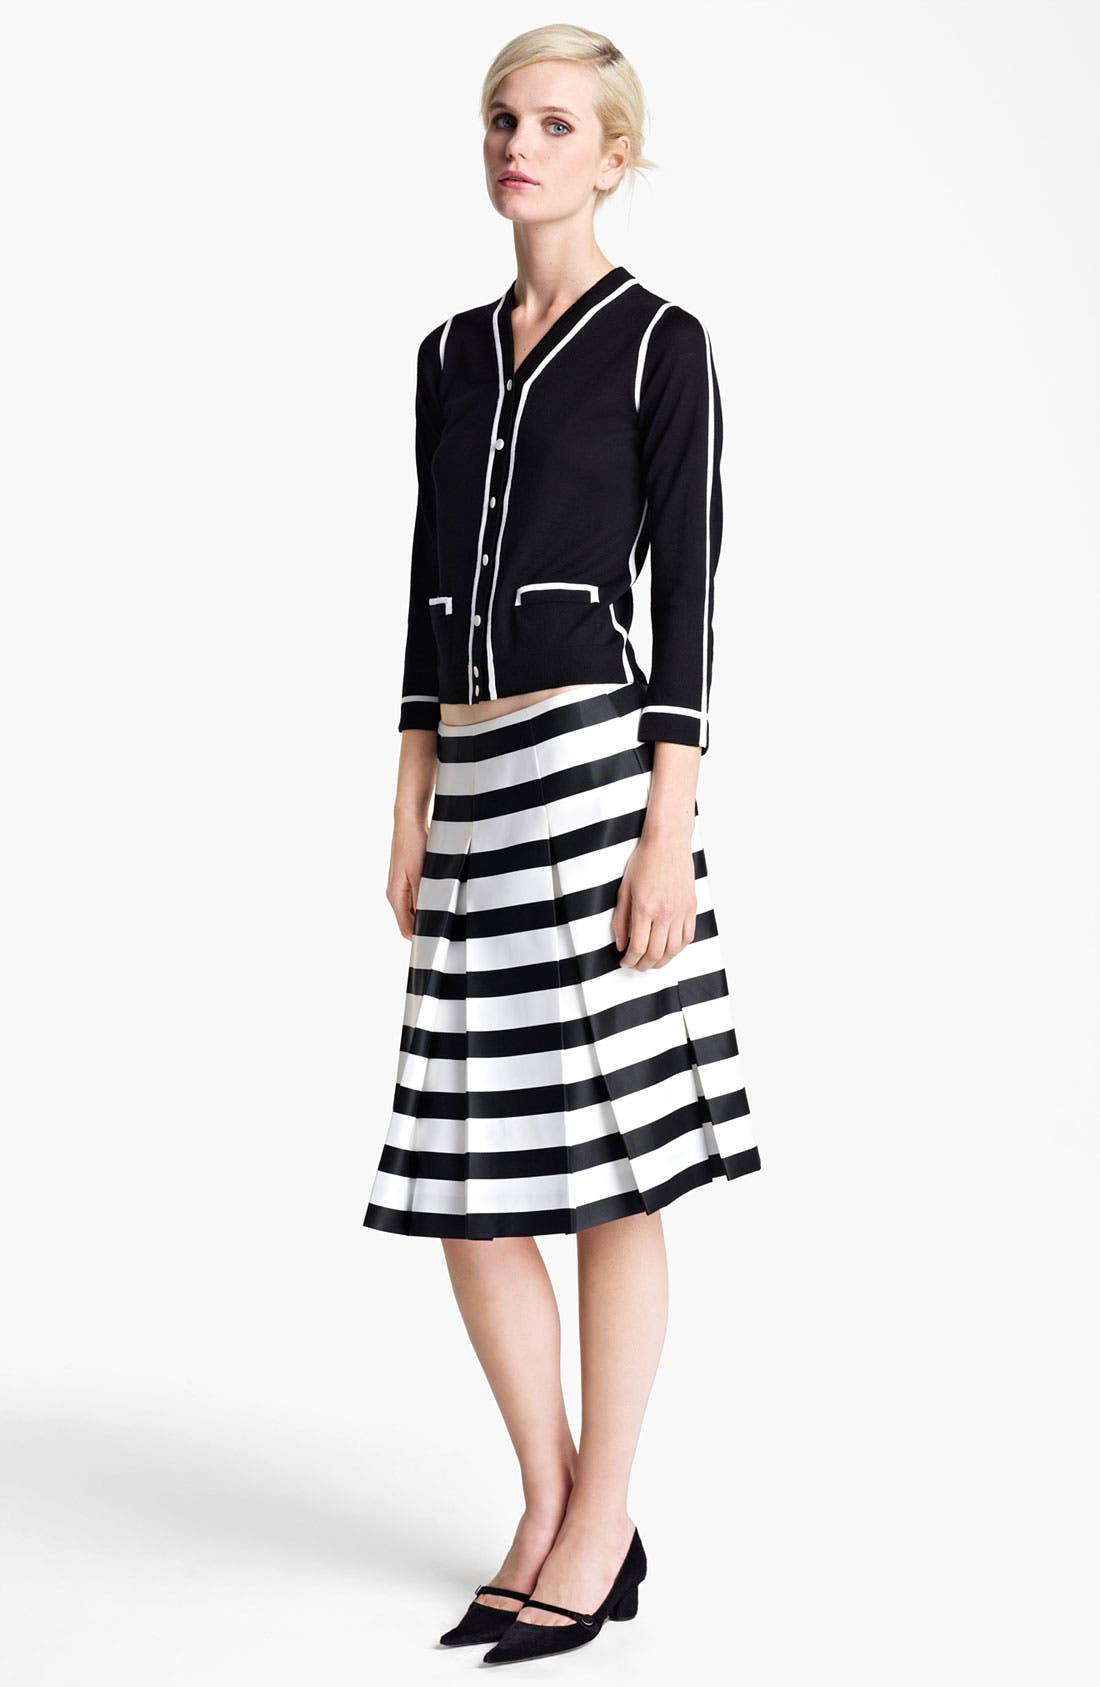 Alternate Image 1 Selected - MARC JACOBS Contrast Trim Cardigan